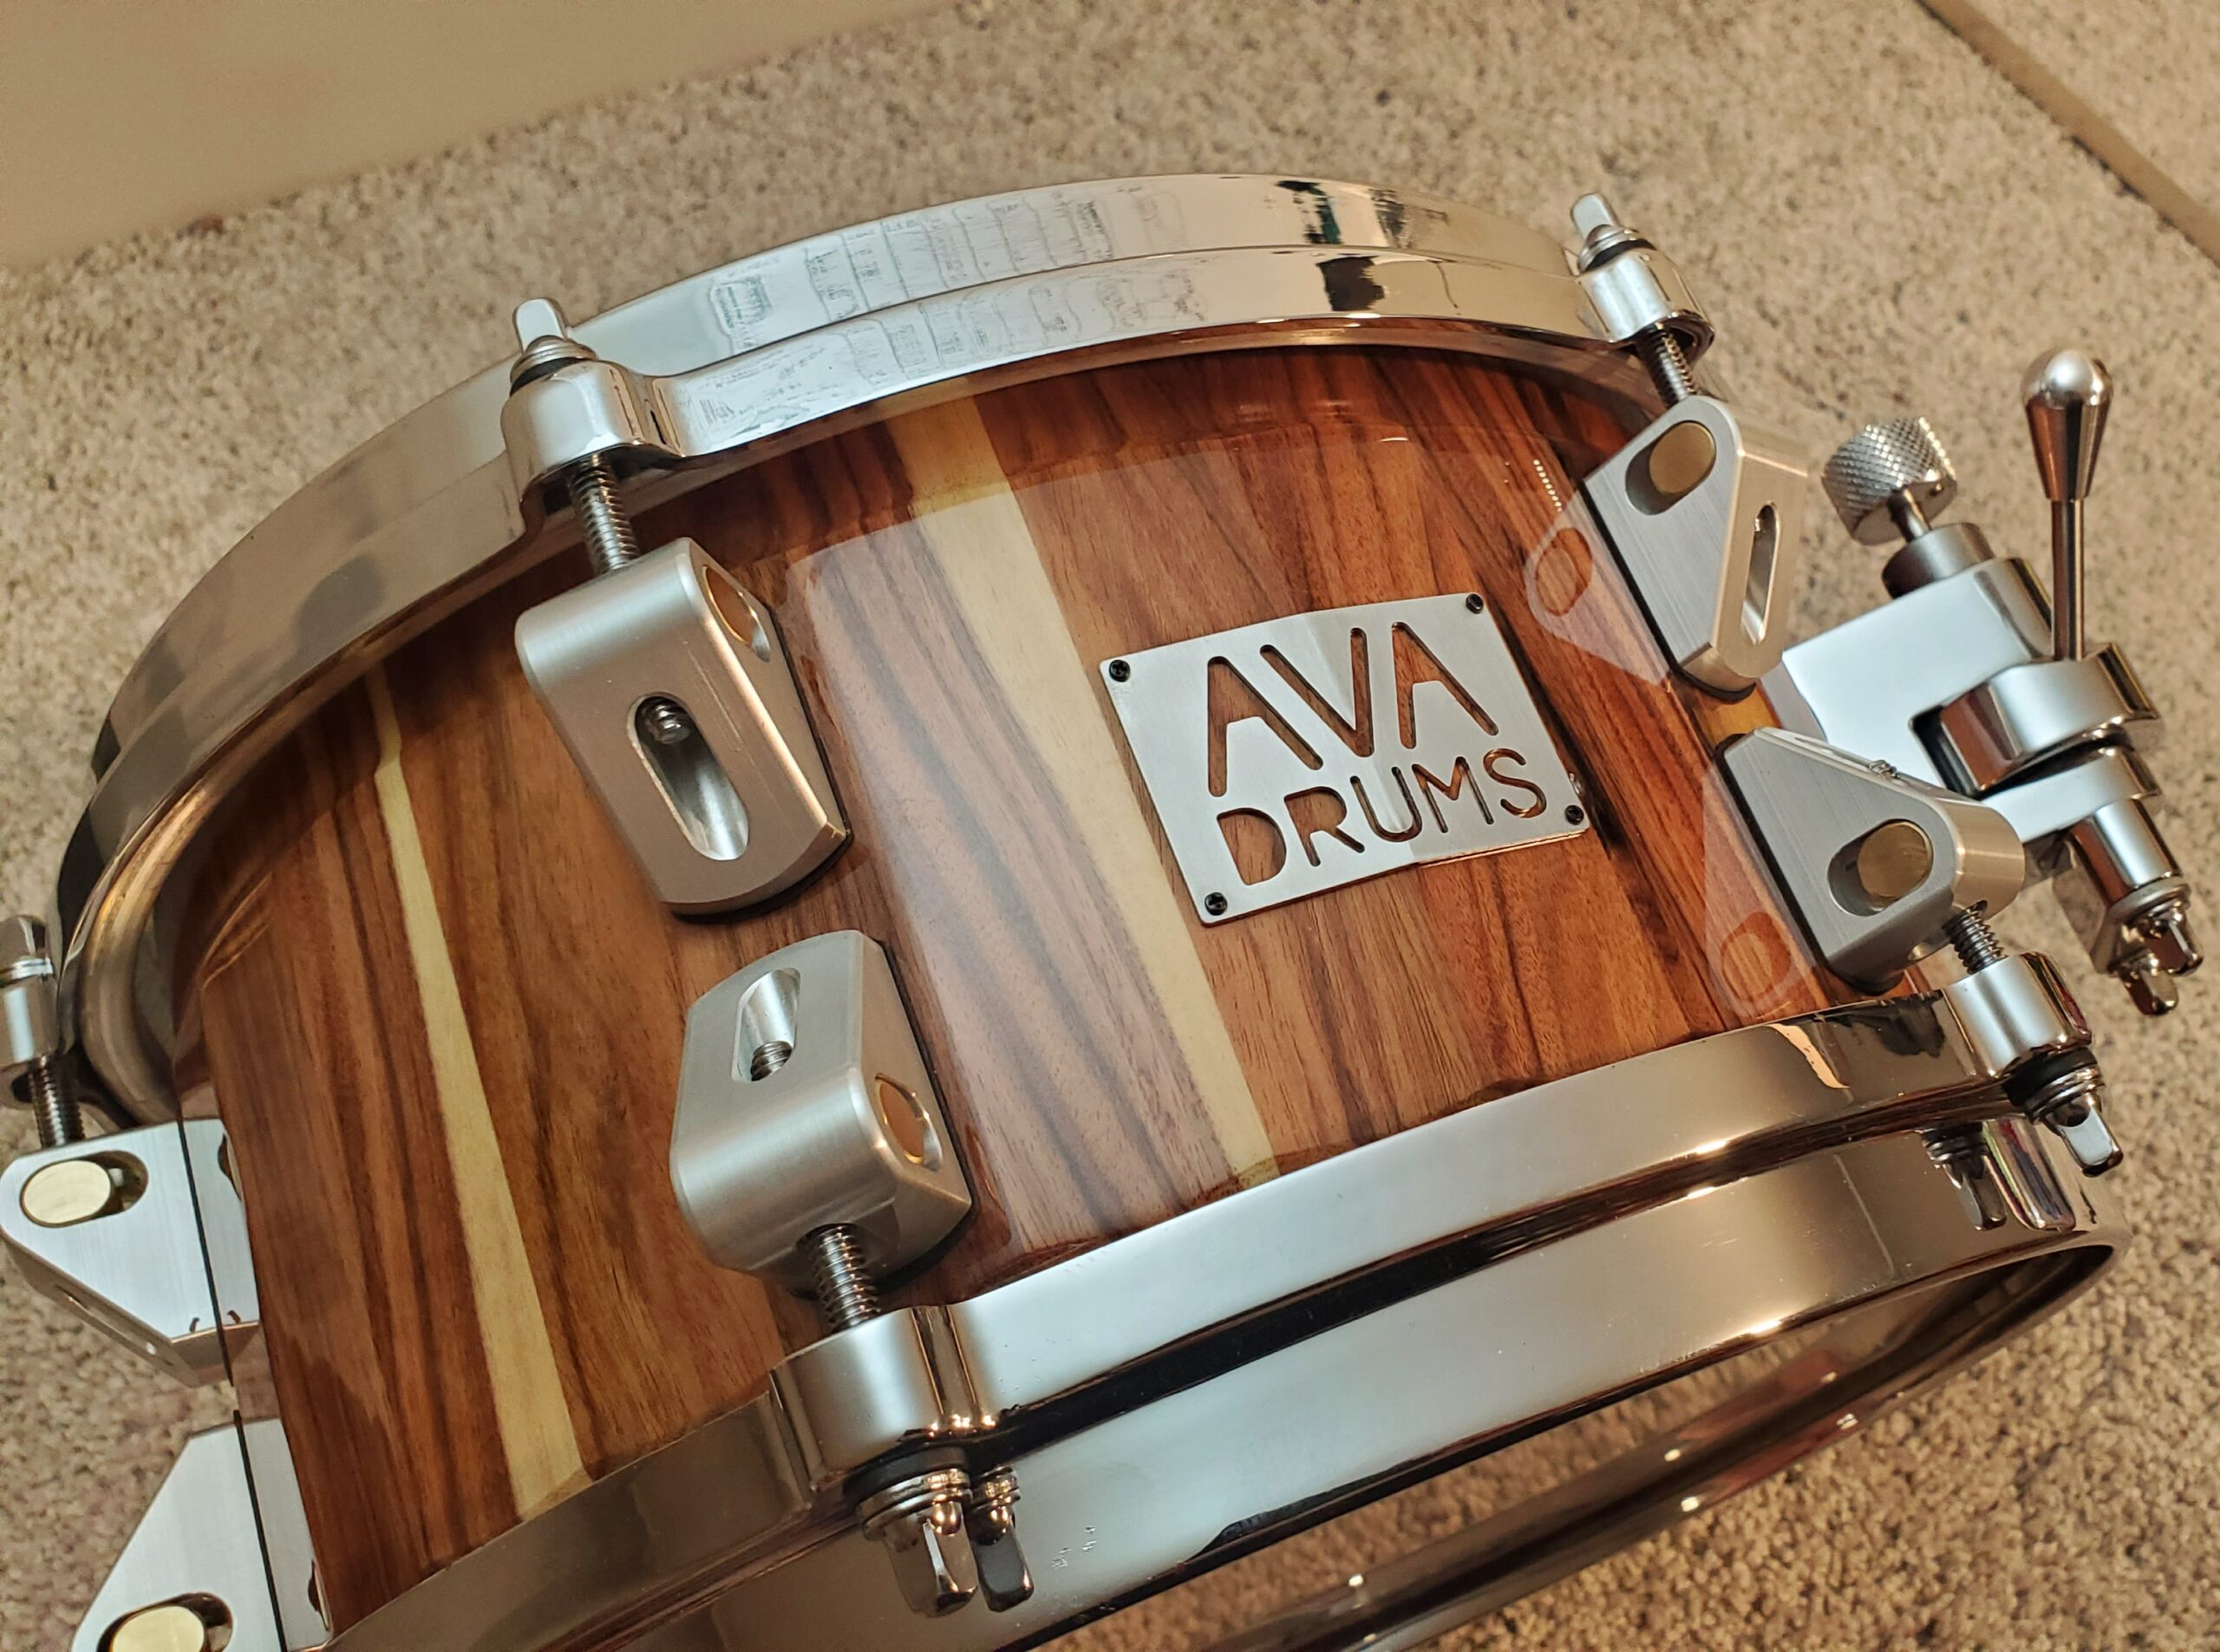 10 X 5.5 INDIAN ROSEWOOD SNARE